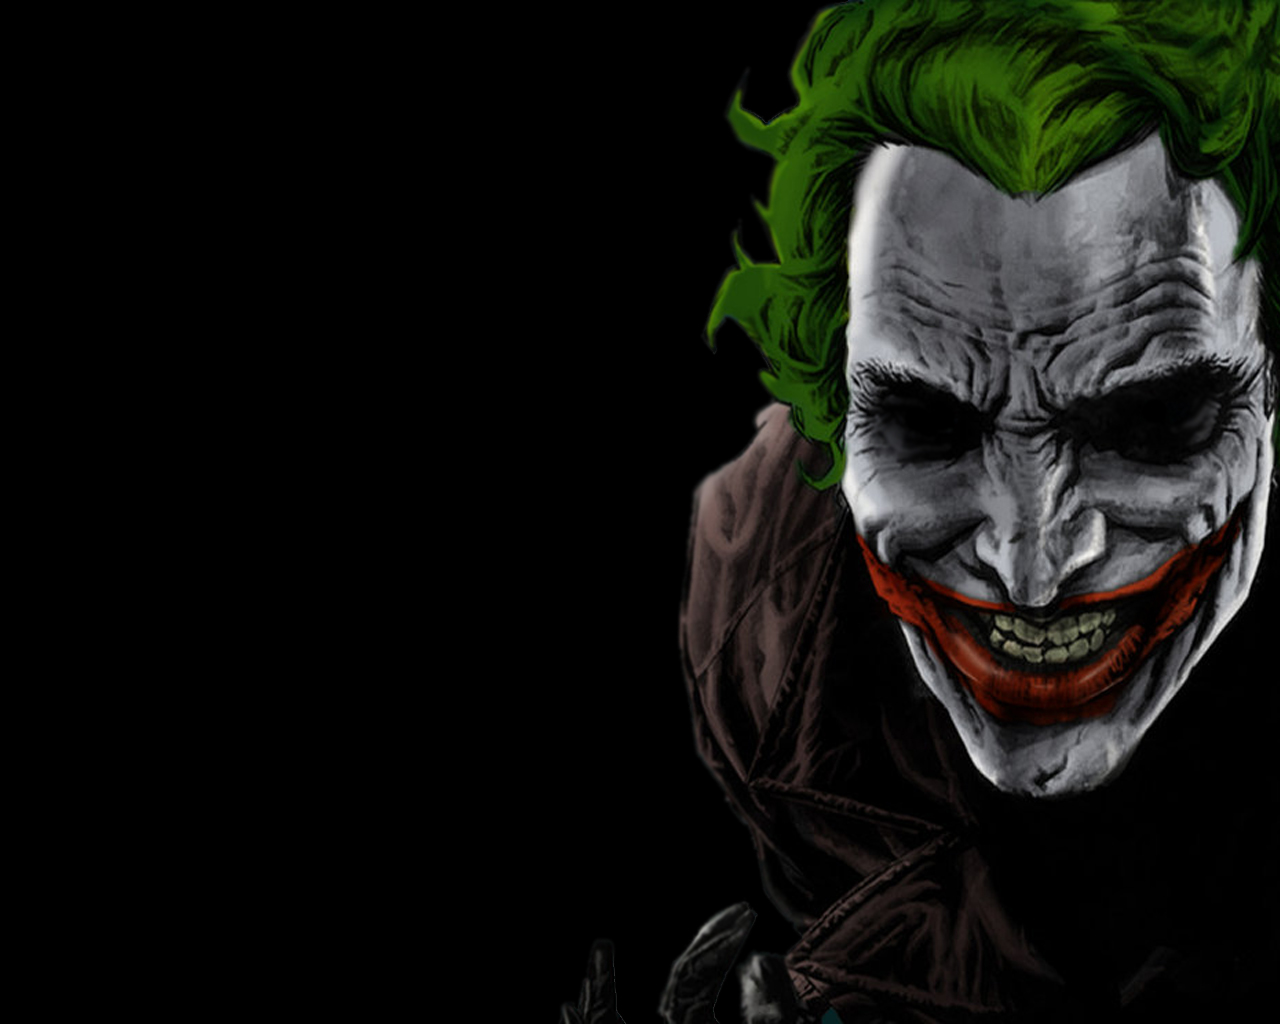 joker   The Joker Wallpaper 32586037 1280x1024